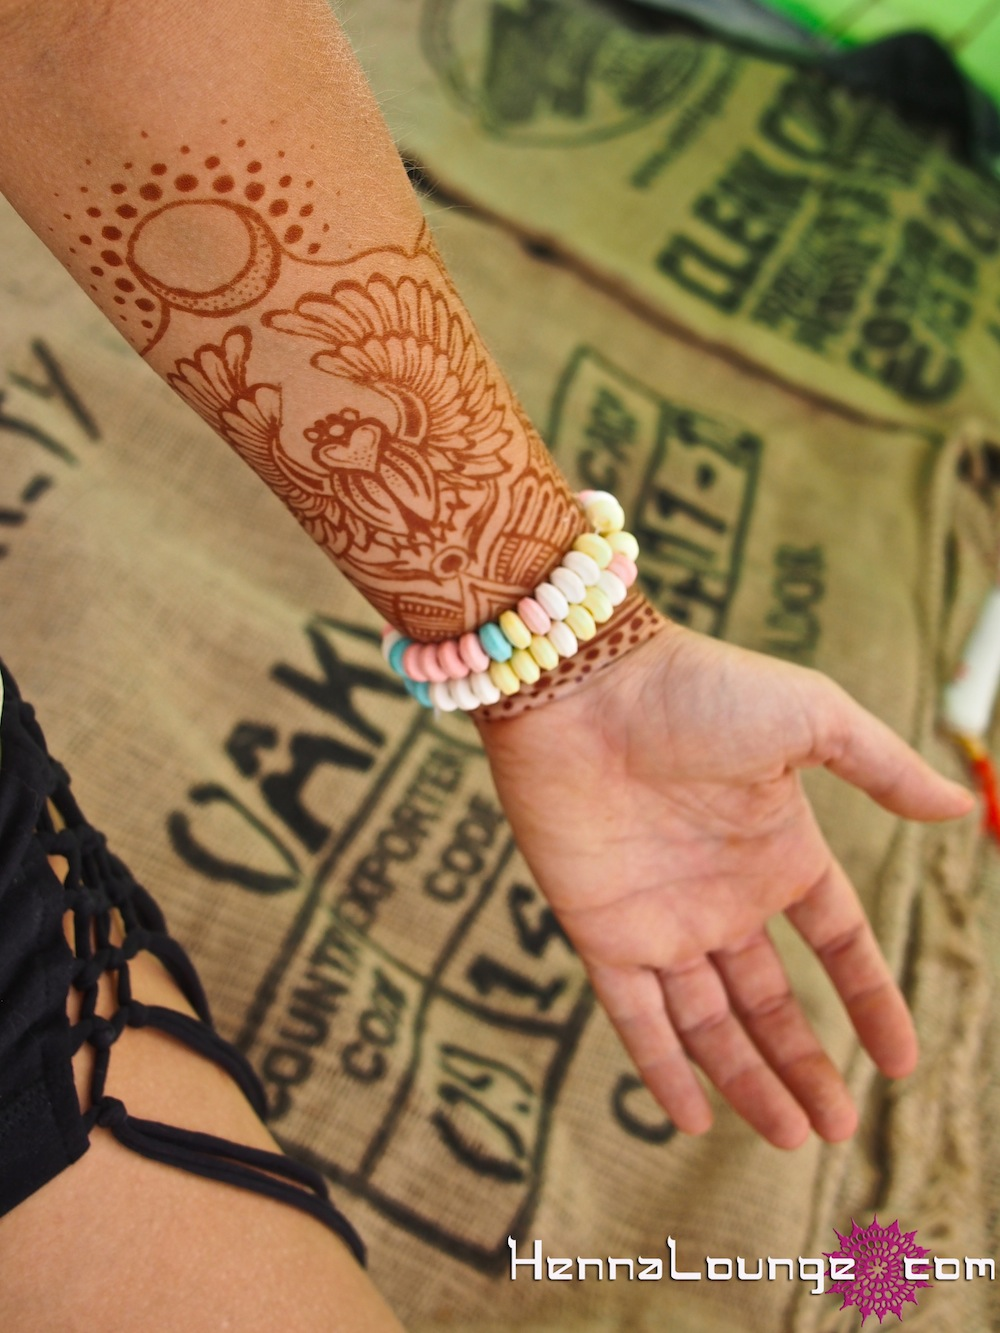 Egyptian Henna Designs: Henna Festivals In The San Francisco Bay Area And Mexico